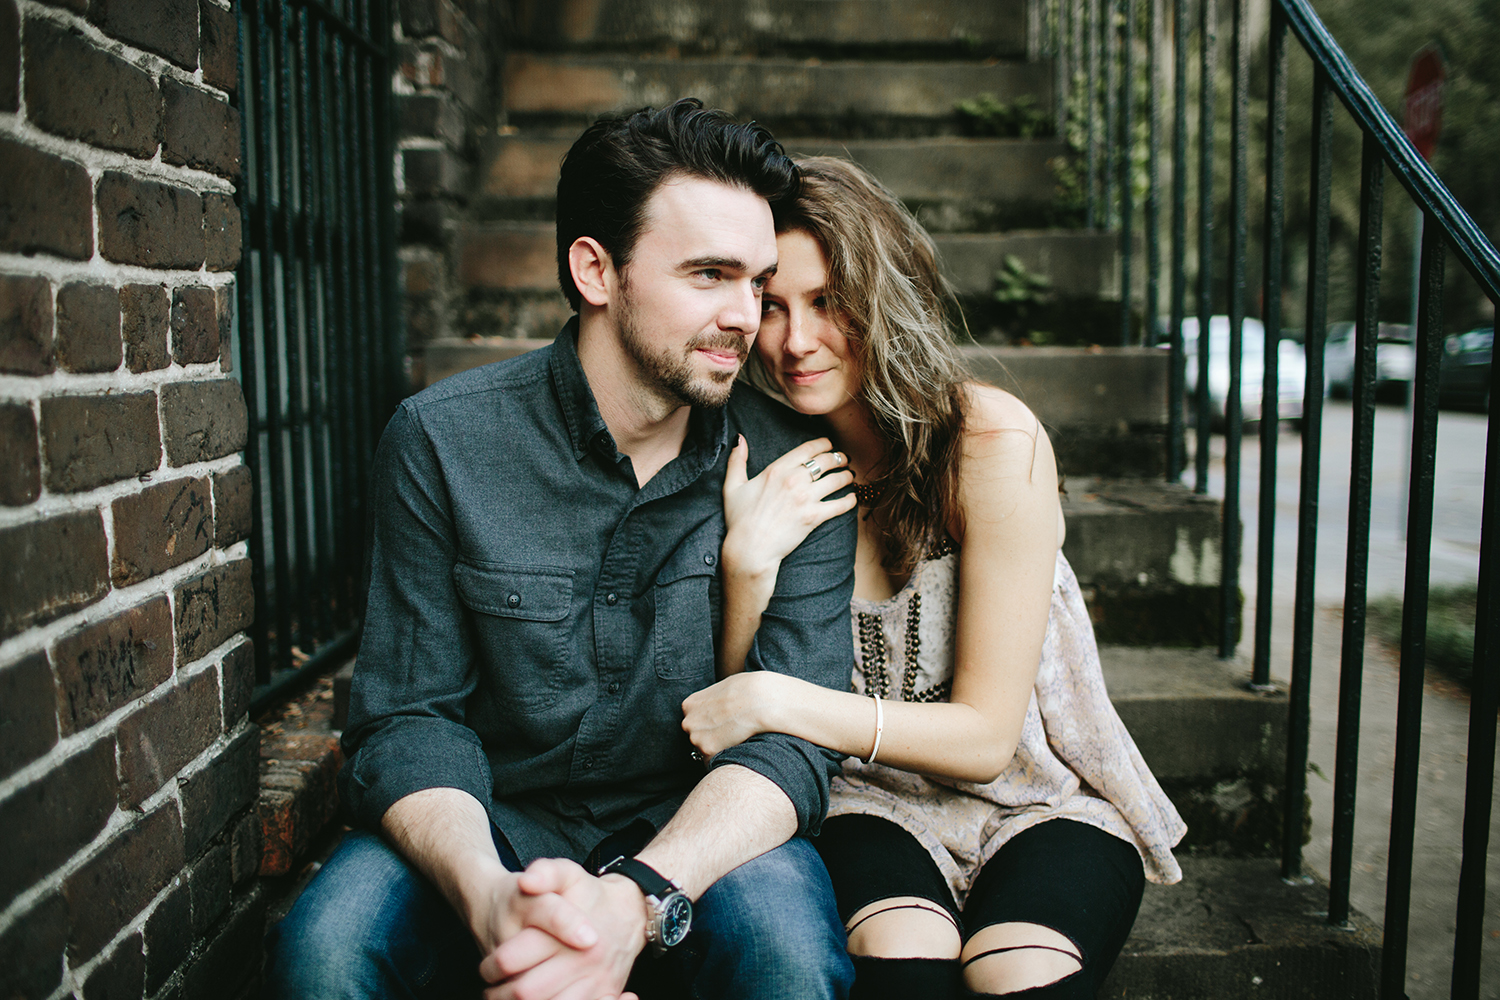 karliwillengaged - alicia white photography-178.jpg